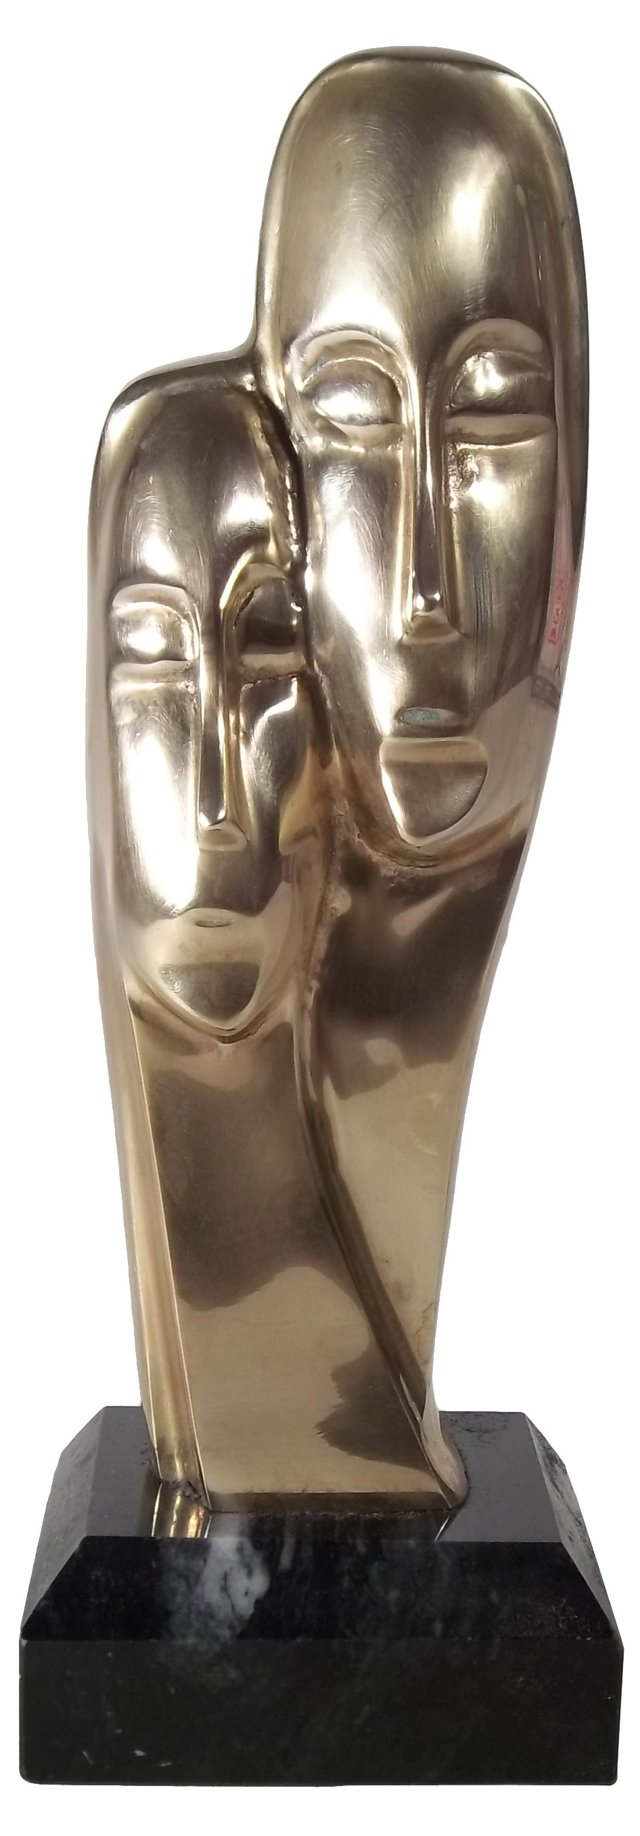 Two Figures Brass Sculpture